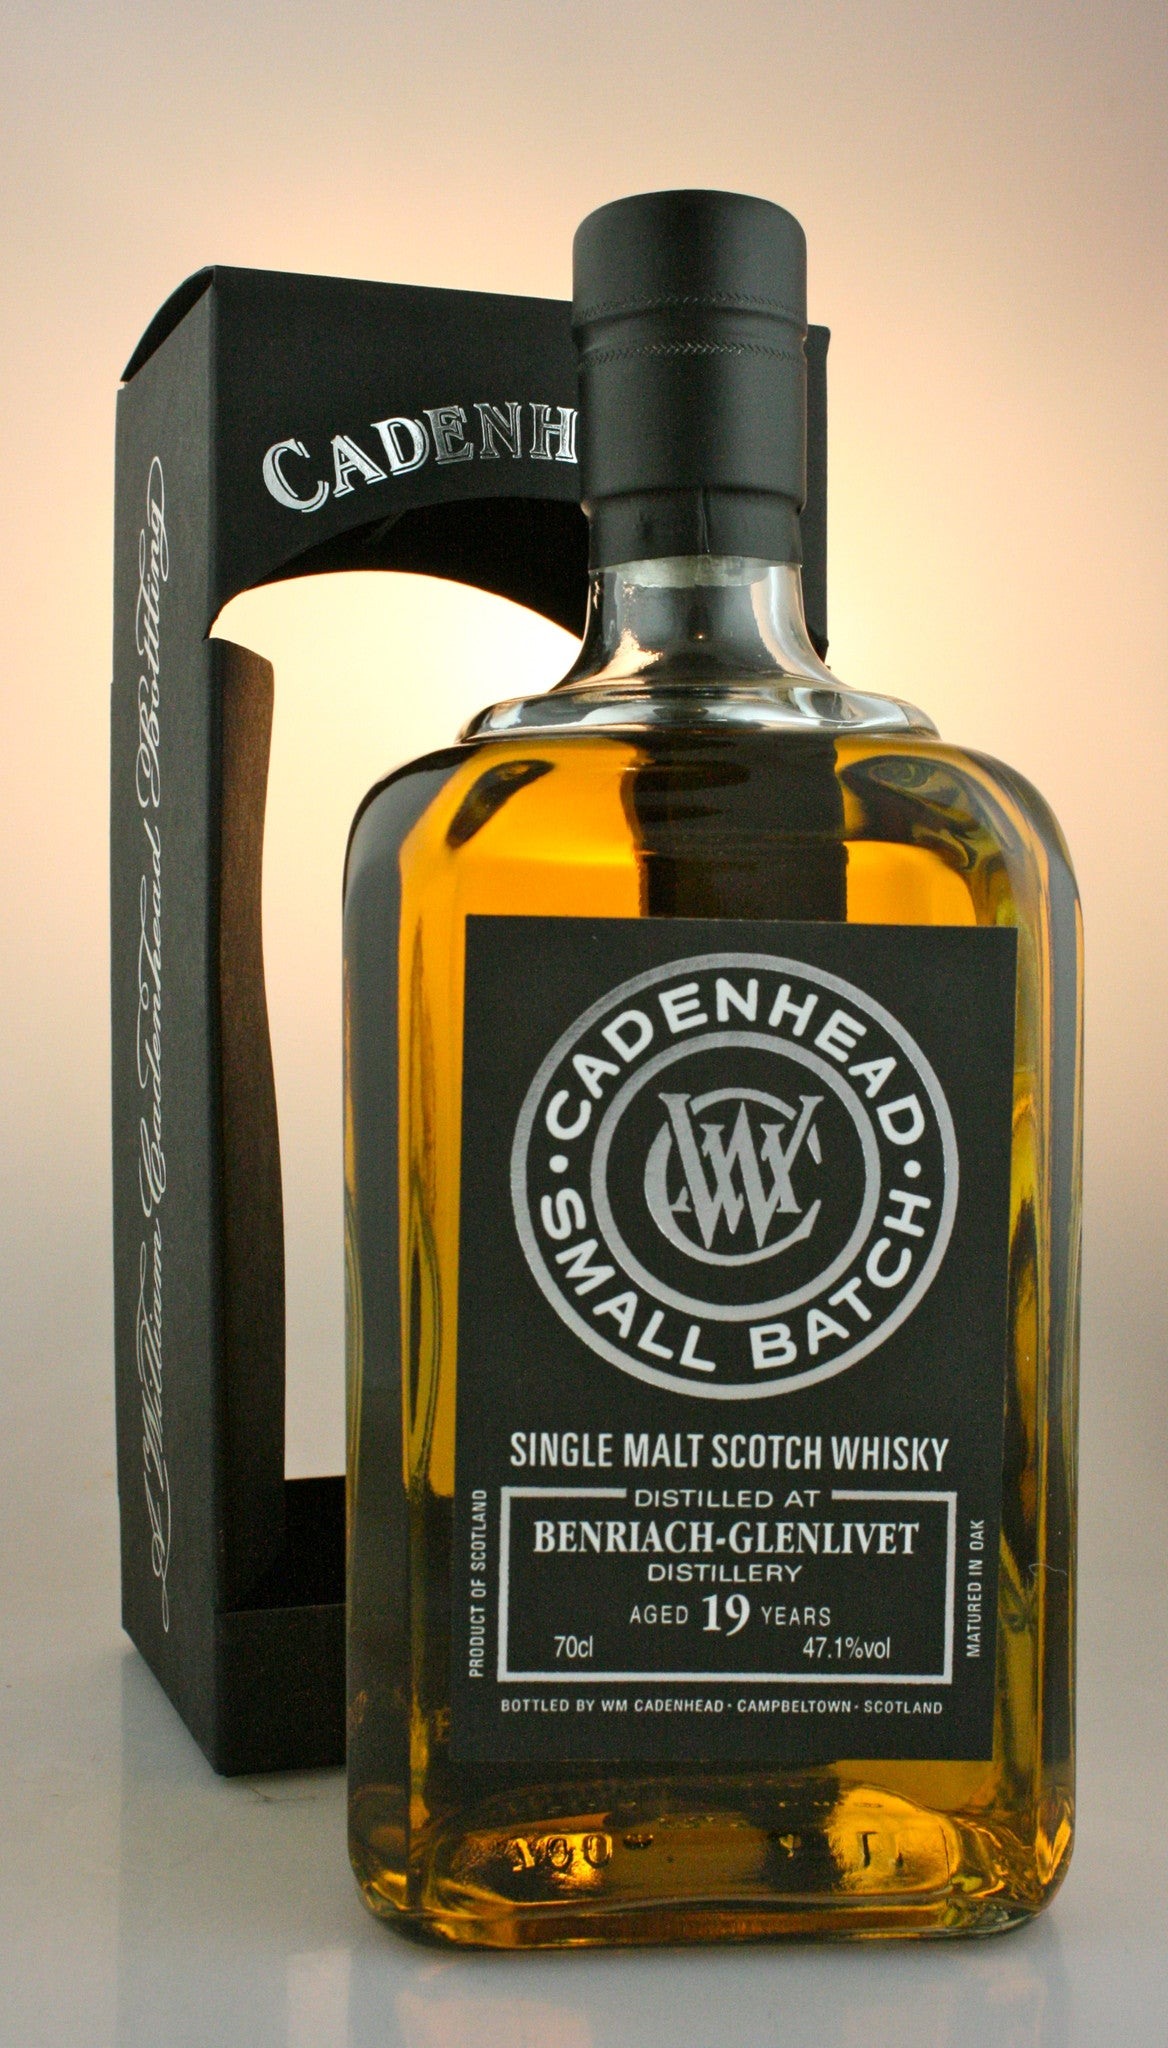 BENRIACH 19yo, 47.1% single malt from Speyside Scotland in Hong Kong by Cadenhead